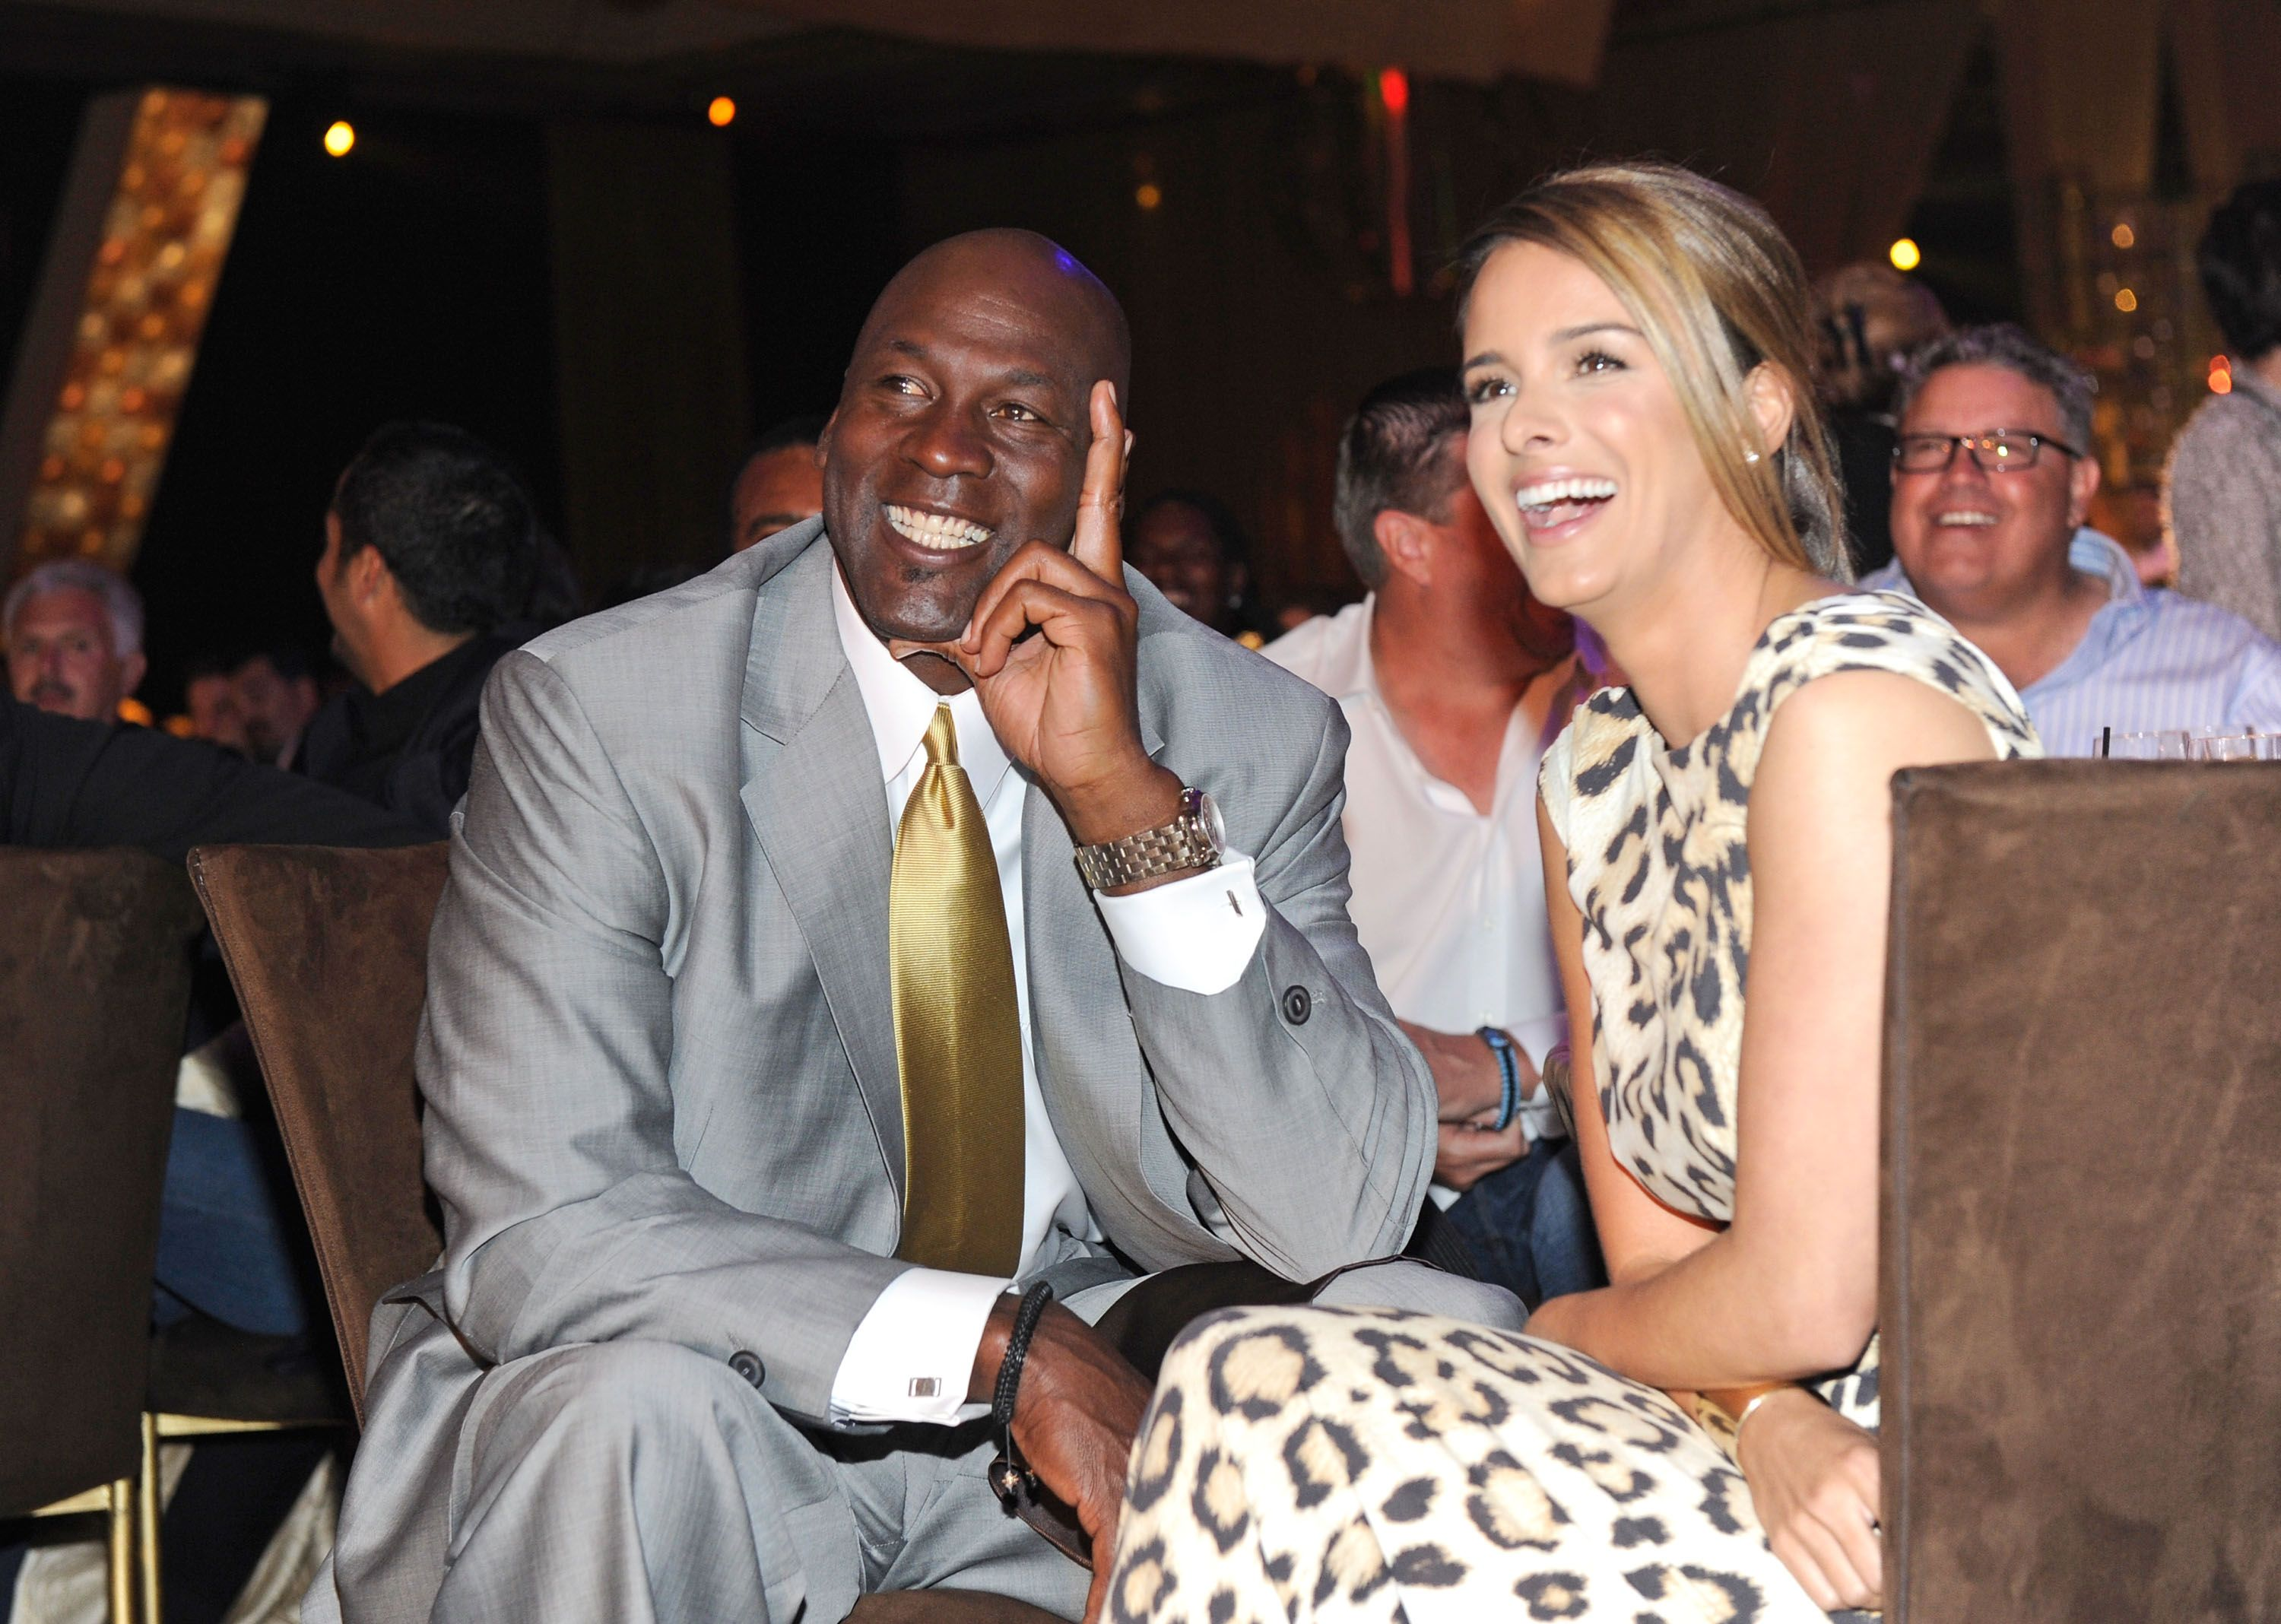 Michael Jordan and his wife Yvette Prieto at a formal function | Source: Getty Images/GlobalImagesUkraine